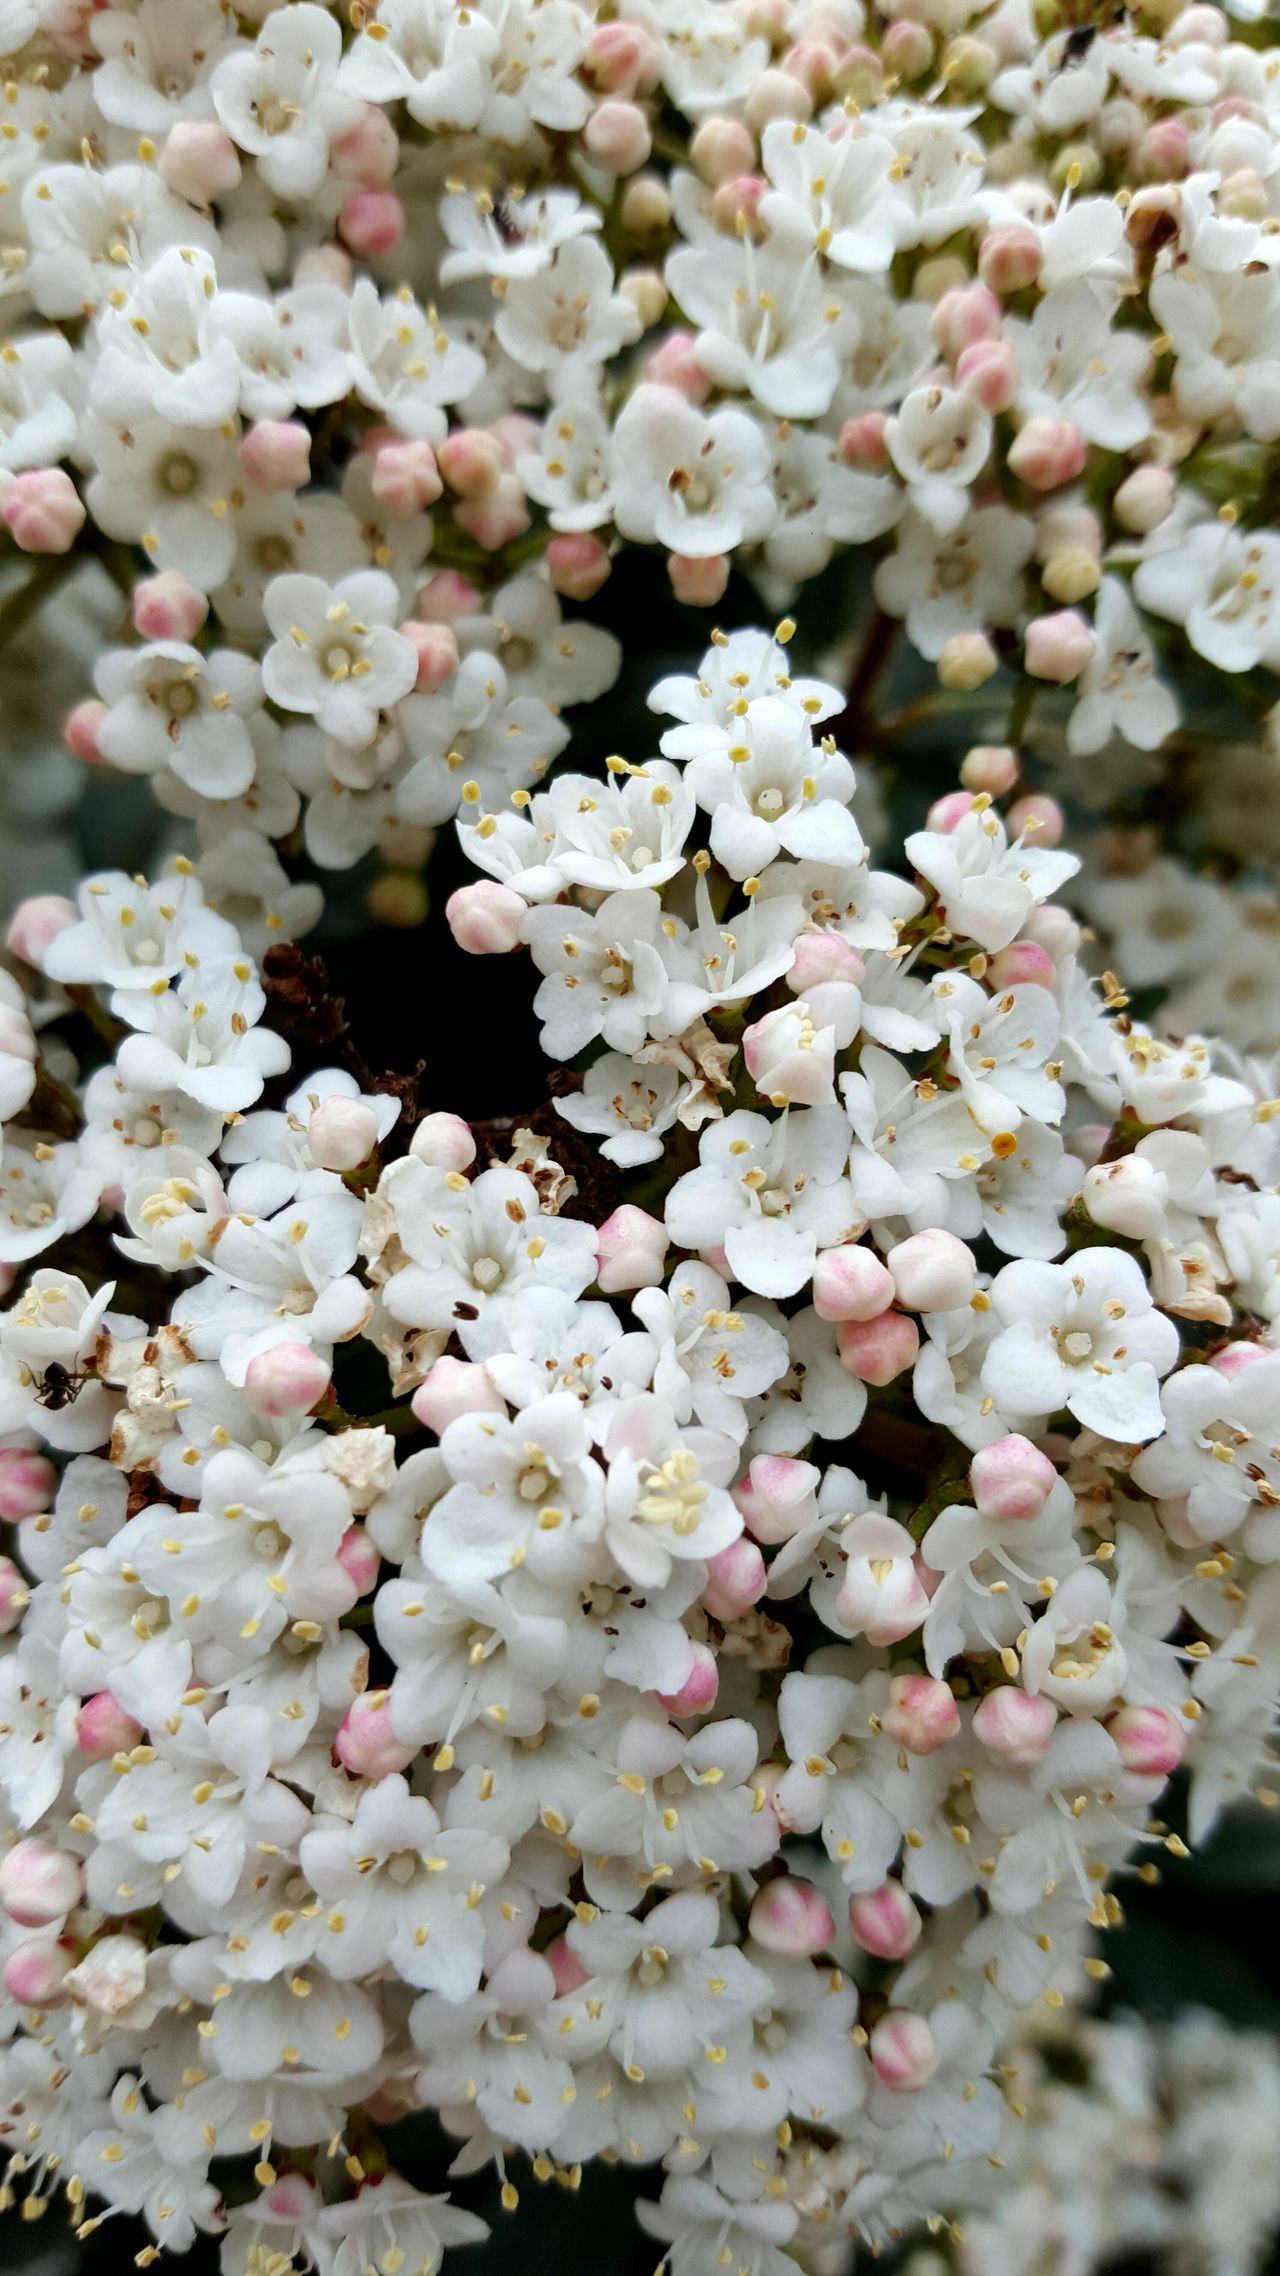 Sweet March... Nature Flower Growth Beauty In Nature Petal Outdoors No People Flower Head Sweet Memories Sweet Nature March Freshness Fragility White White Flower White Color White Flowers Whitandpink My Garden My Garden @my Home Blossom Blossoms  Blossoming  Blossom Flowers